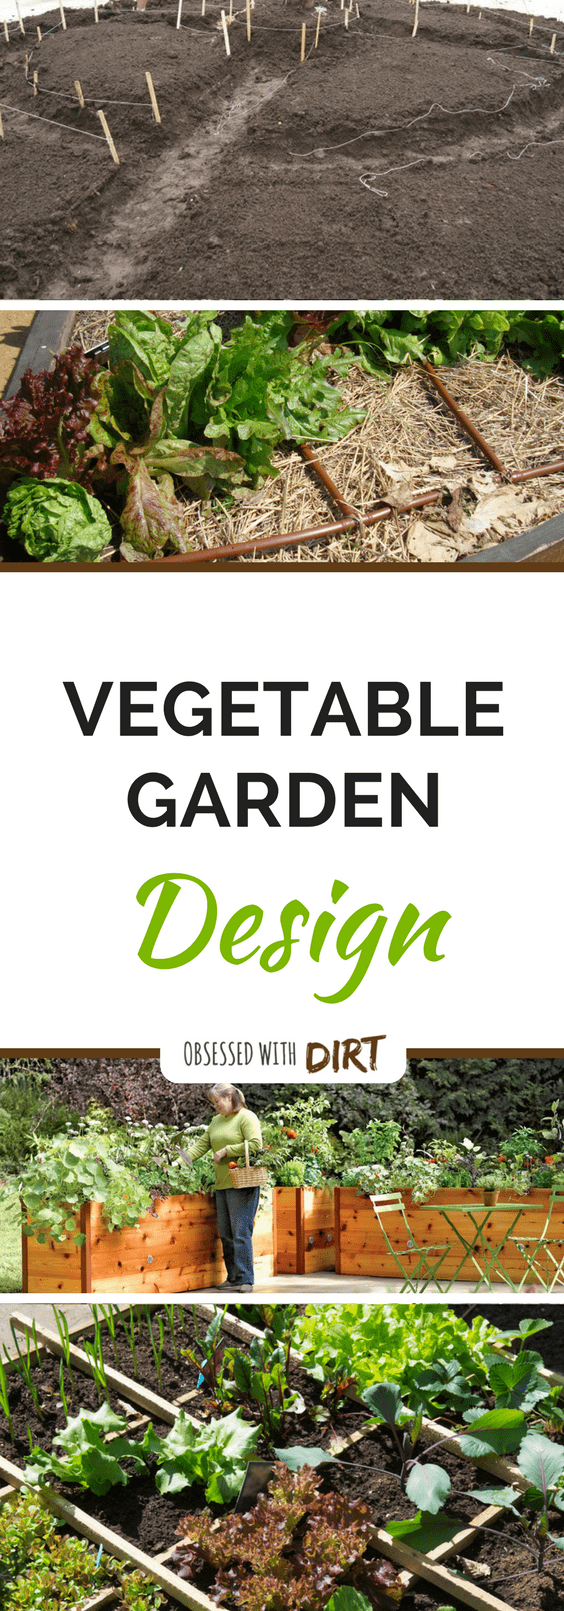 vegetable garden design how to plant your veggie patch - Garden Design Vegetable Patch